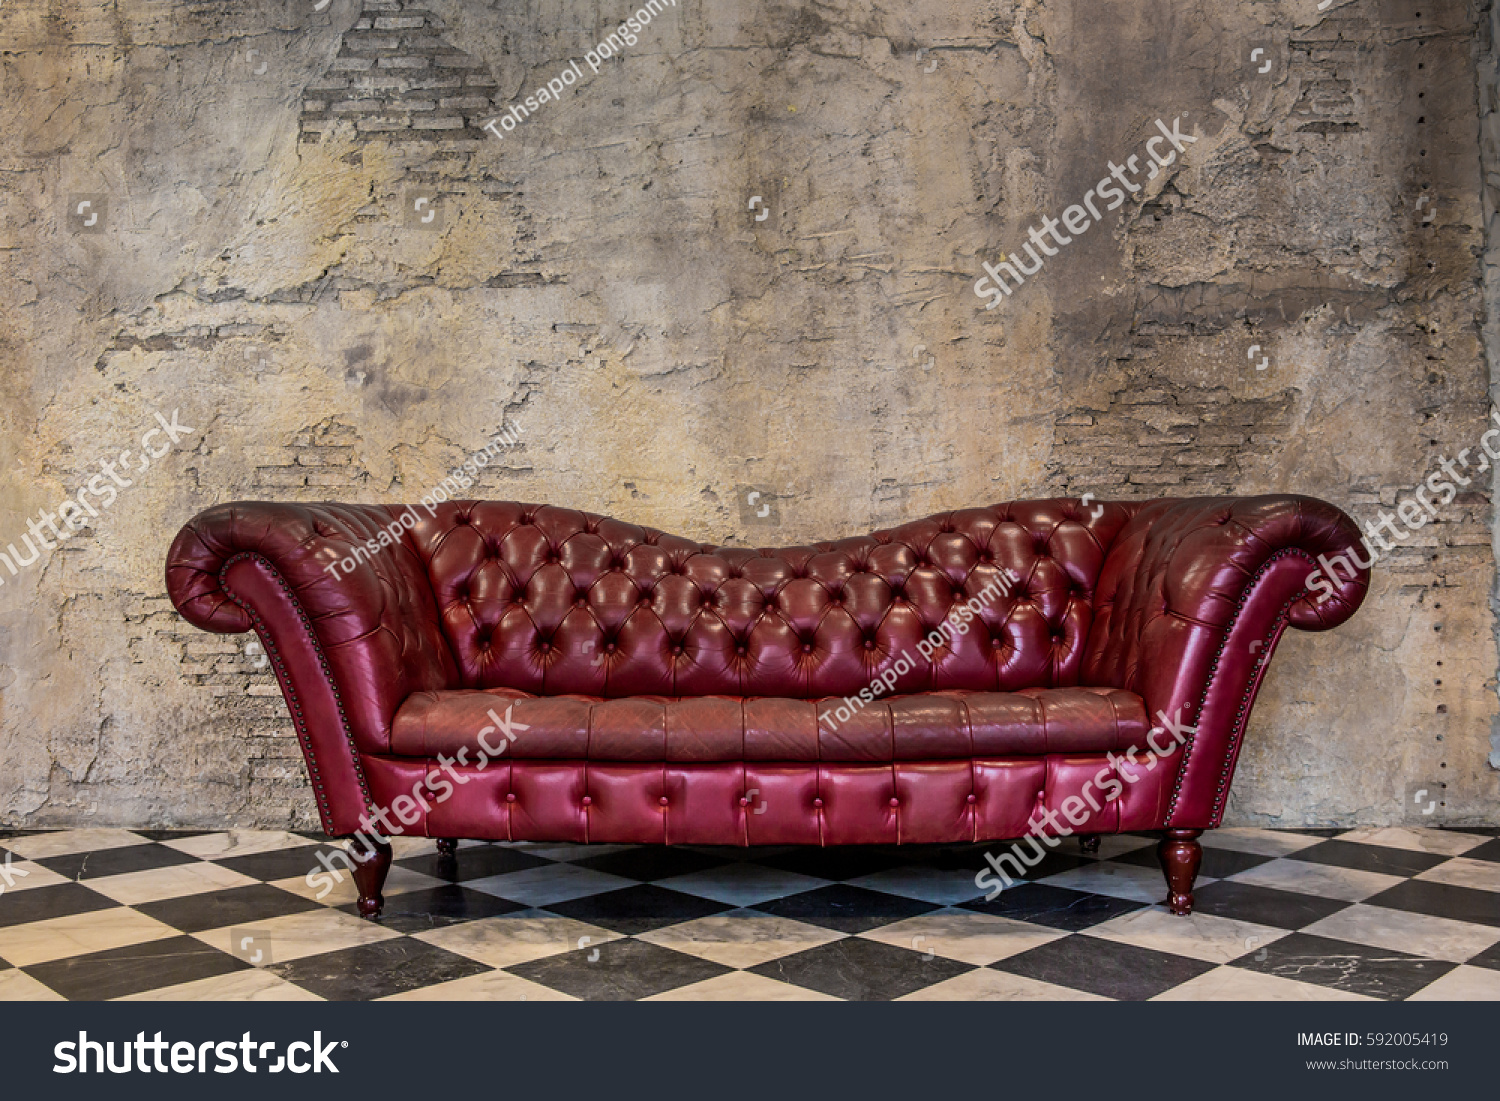 The red sofa,  The old cement wall background